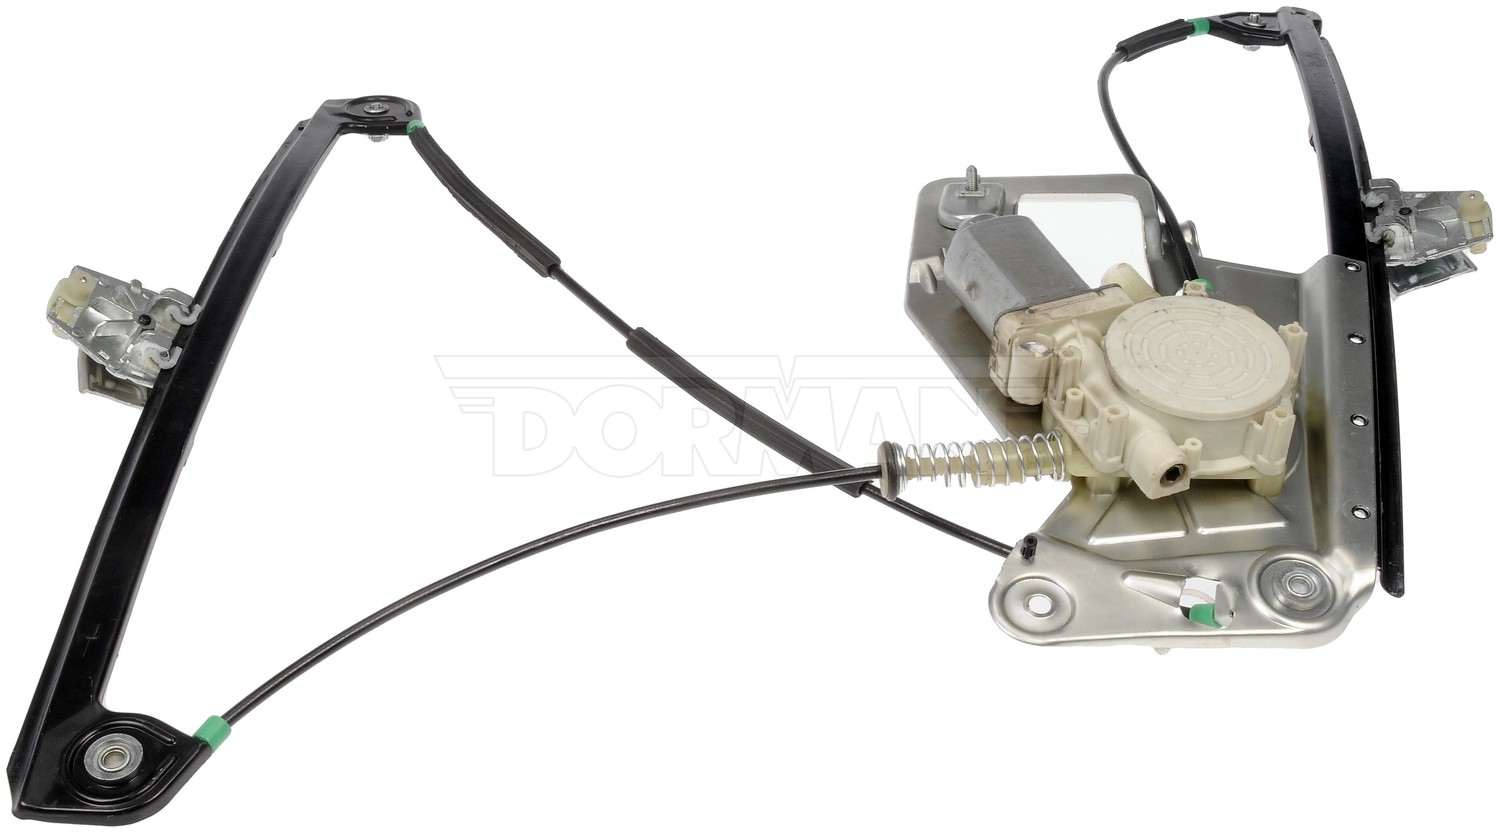 DORMAN OE SOLUTIONS - Power Window Motor And Regulator Assembly (Front Left) - DRE 741-478